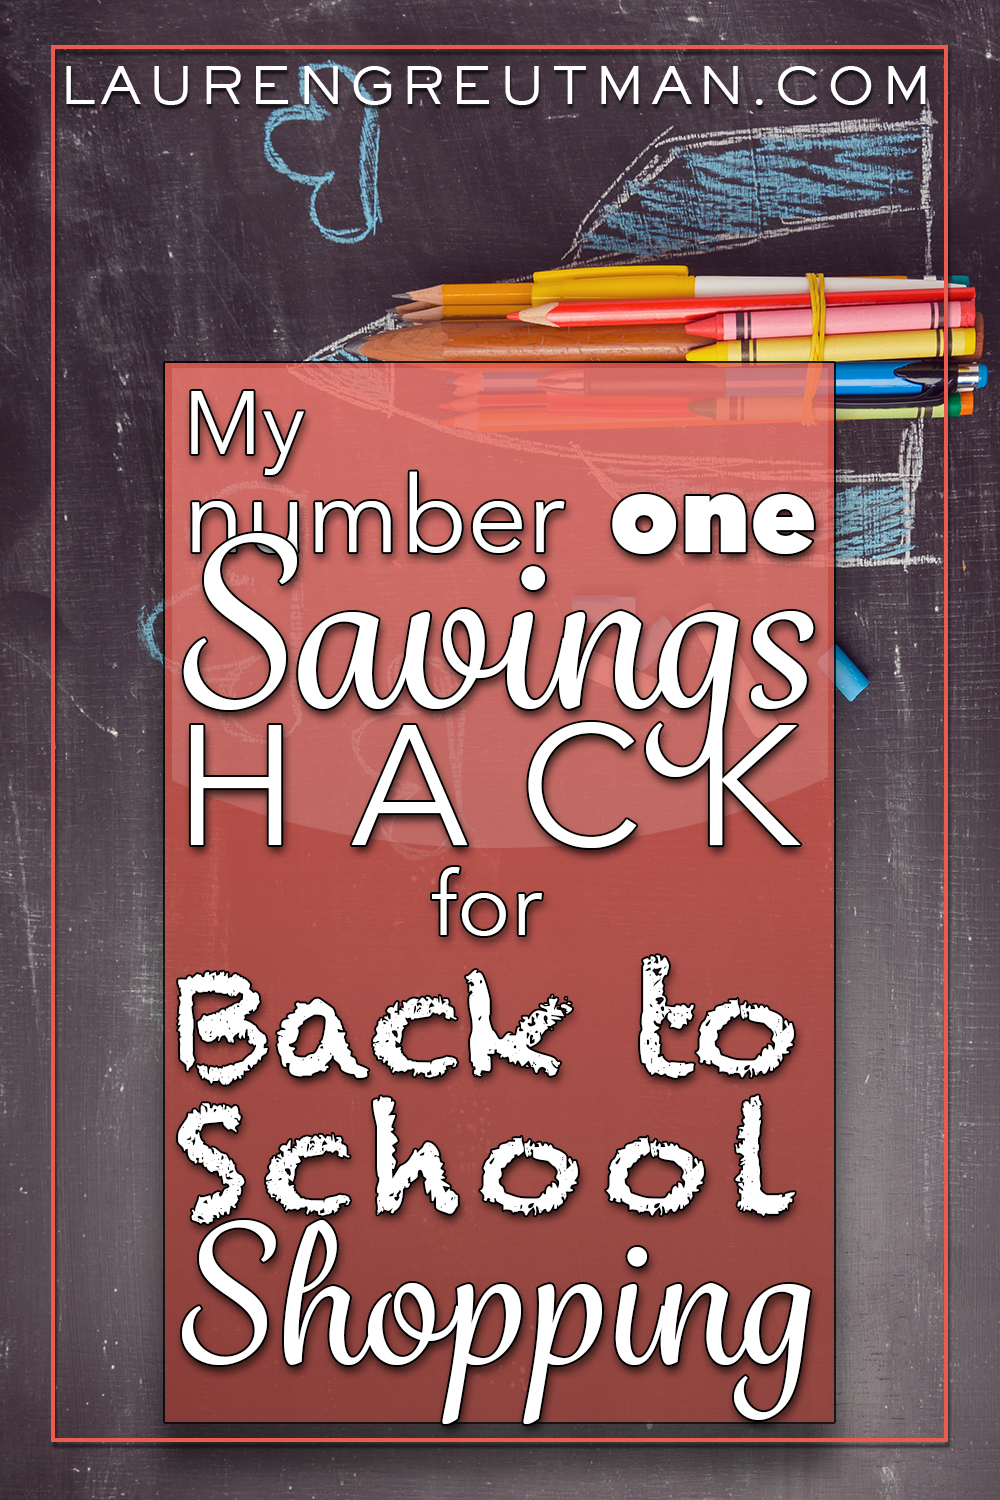 Are you wanting to spend less money on school supplies this year?  Here is my #1 savings hack for back to school shopping.